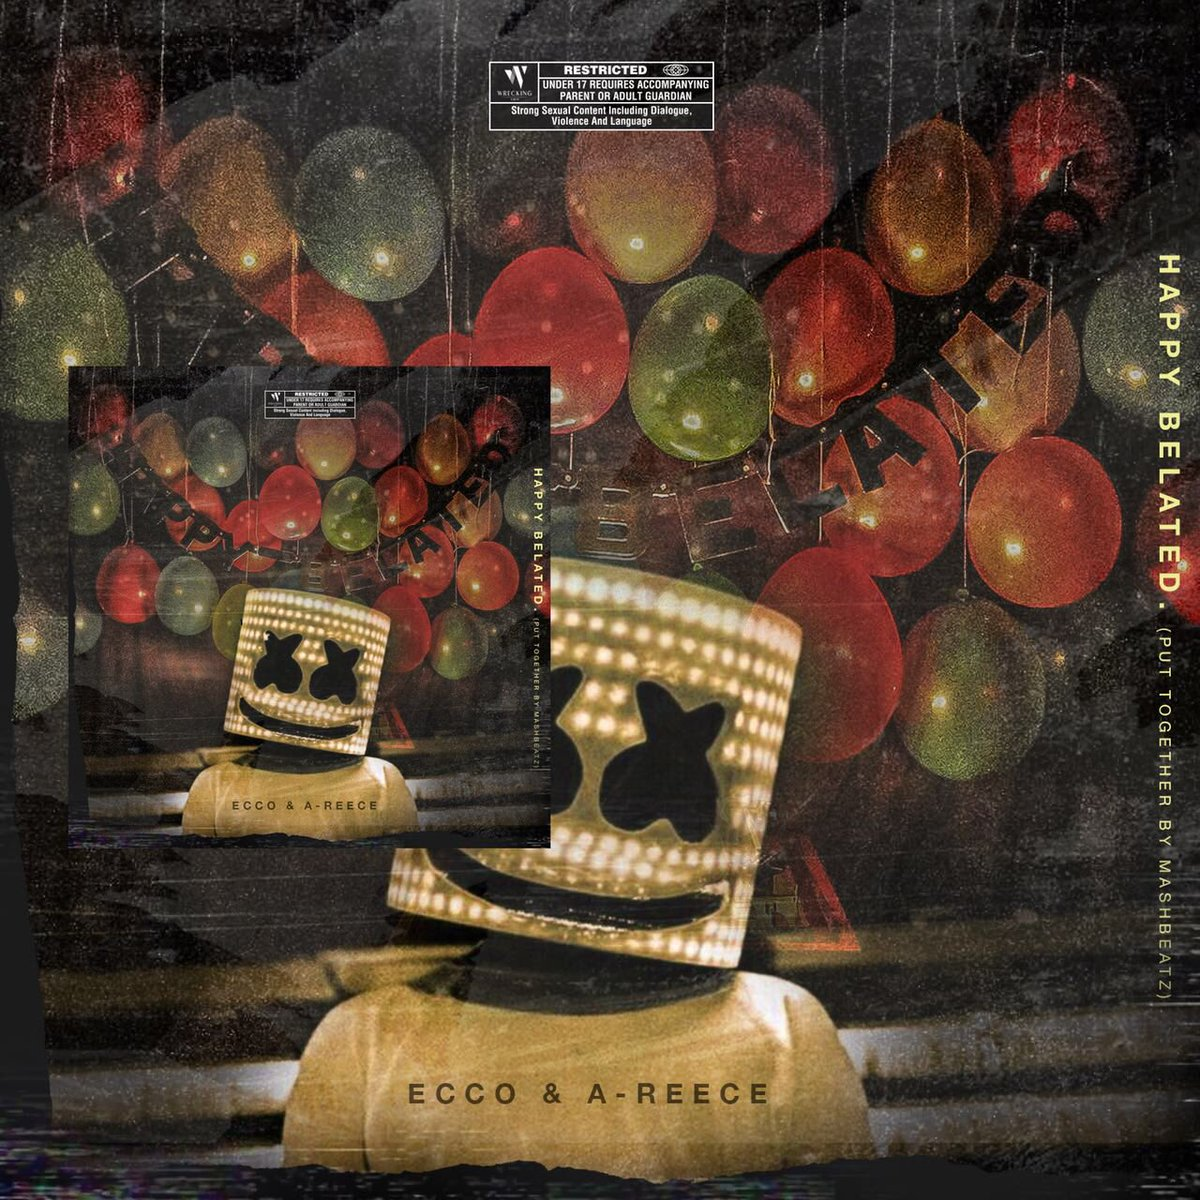 Ecco - Happy Belated ft. A-Reece